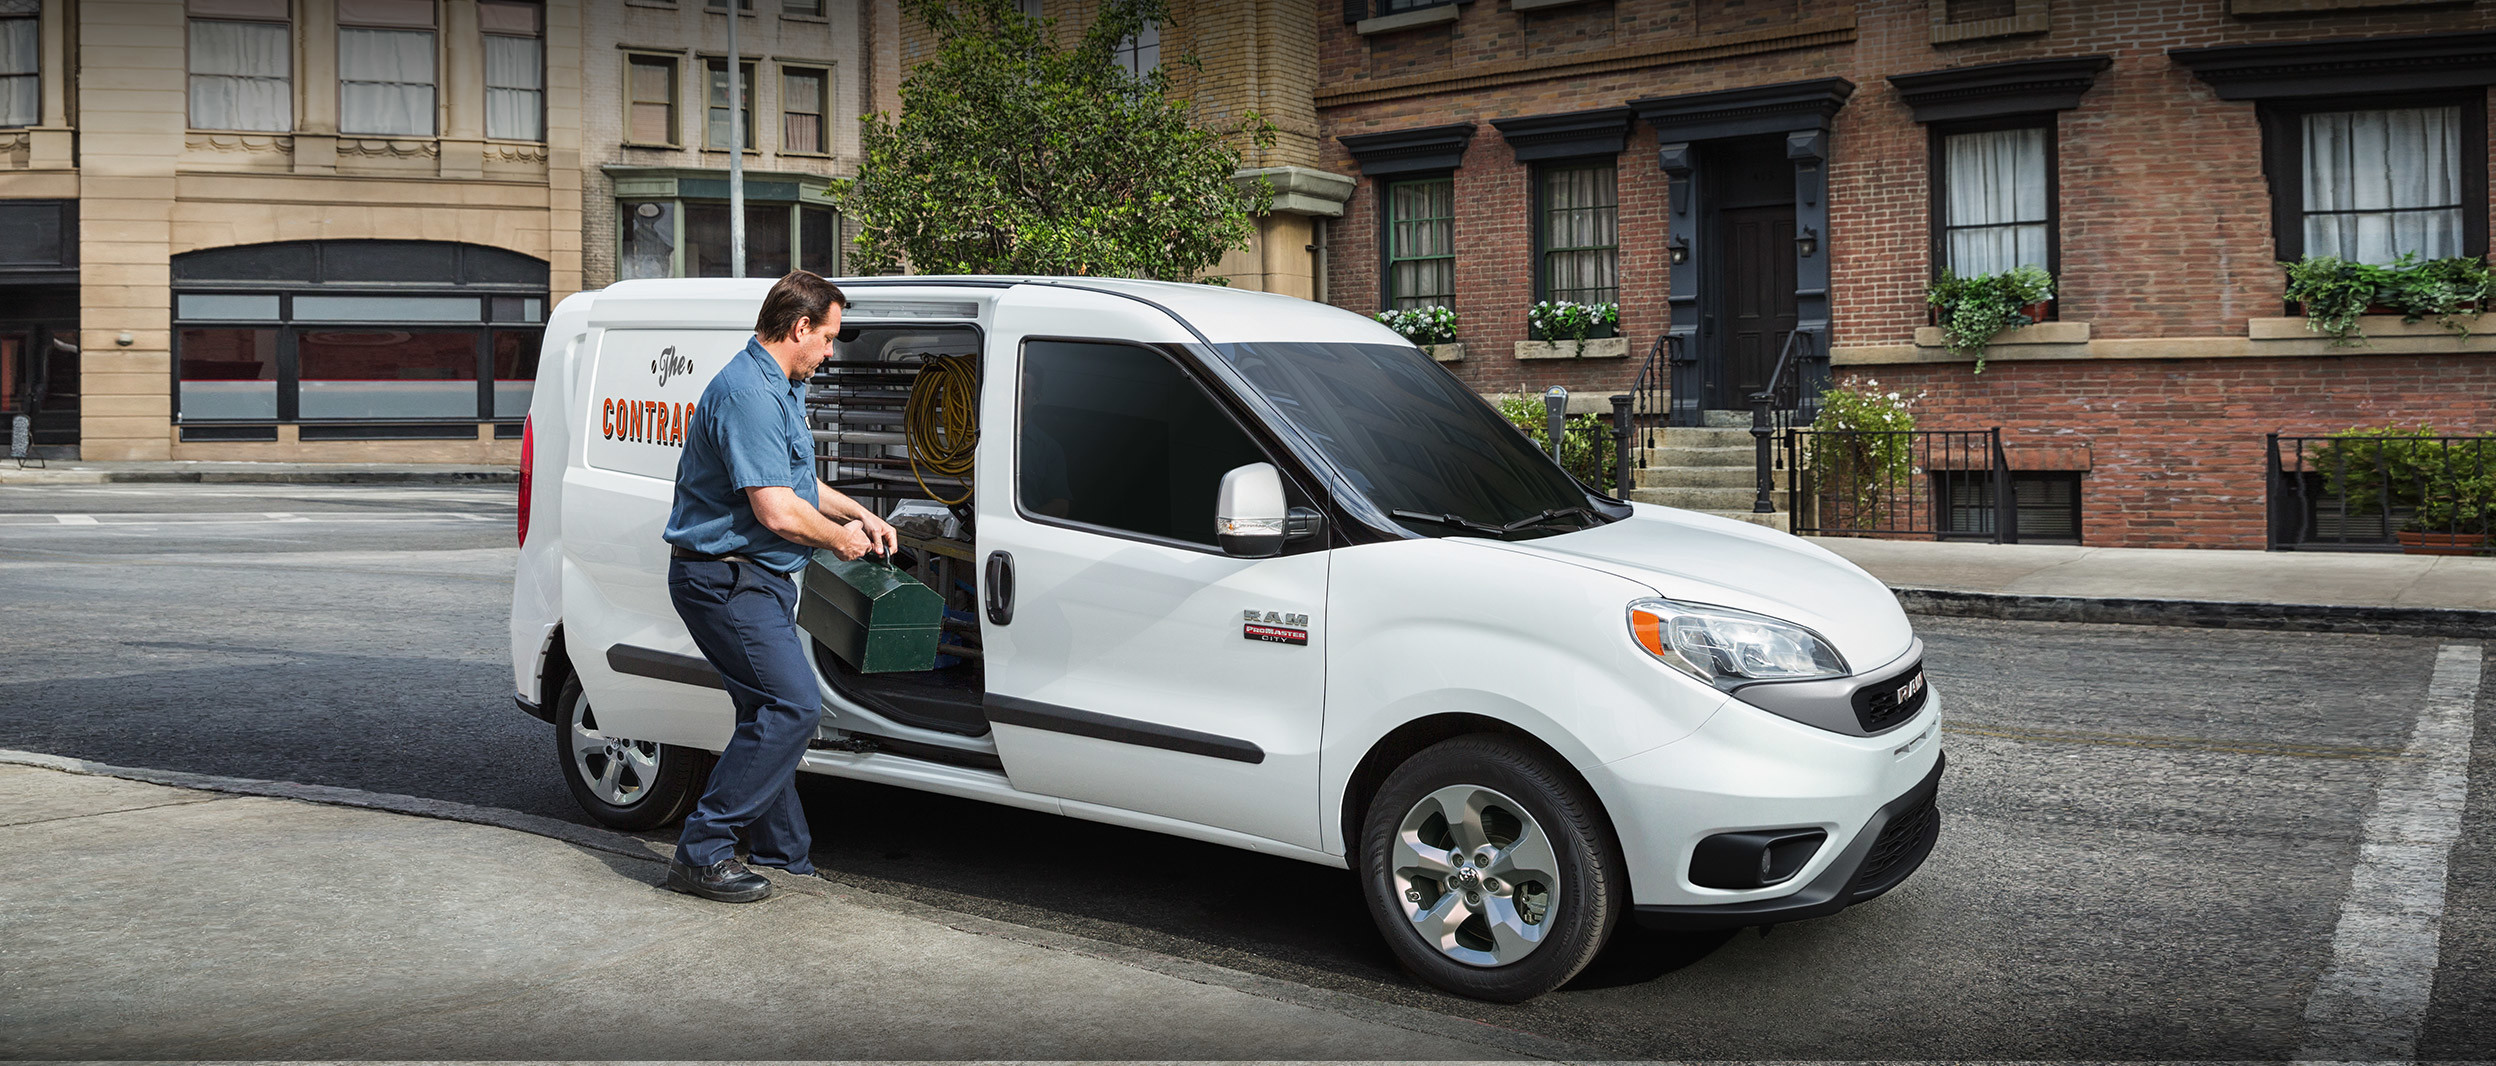 2020 Ram ProMaster City parked in urban area while man loading tool box